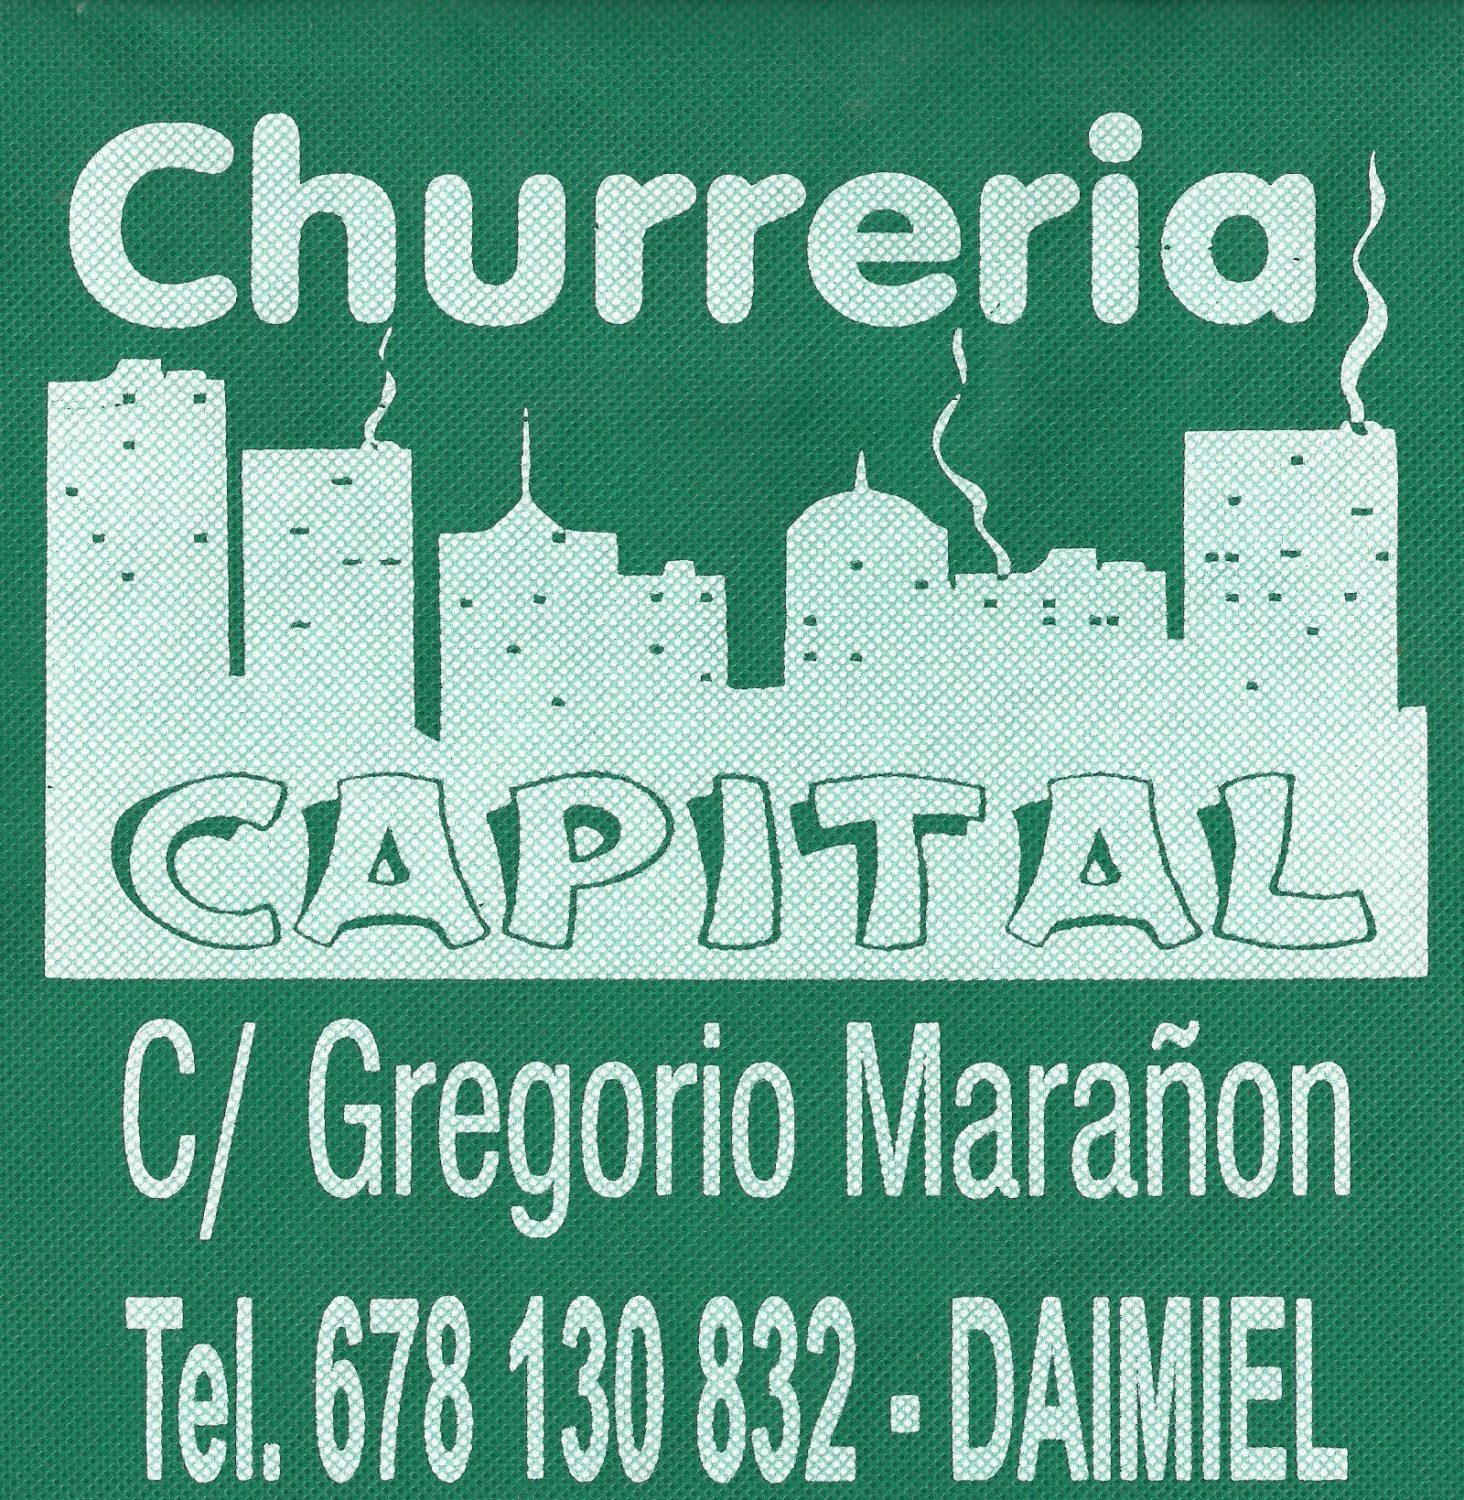 Churreria Capital